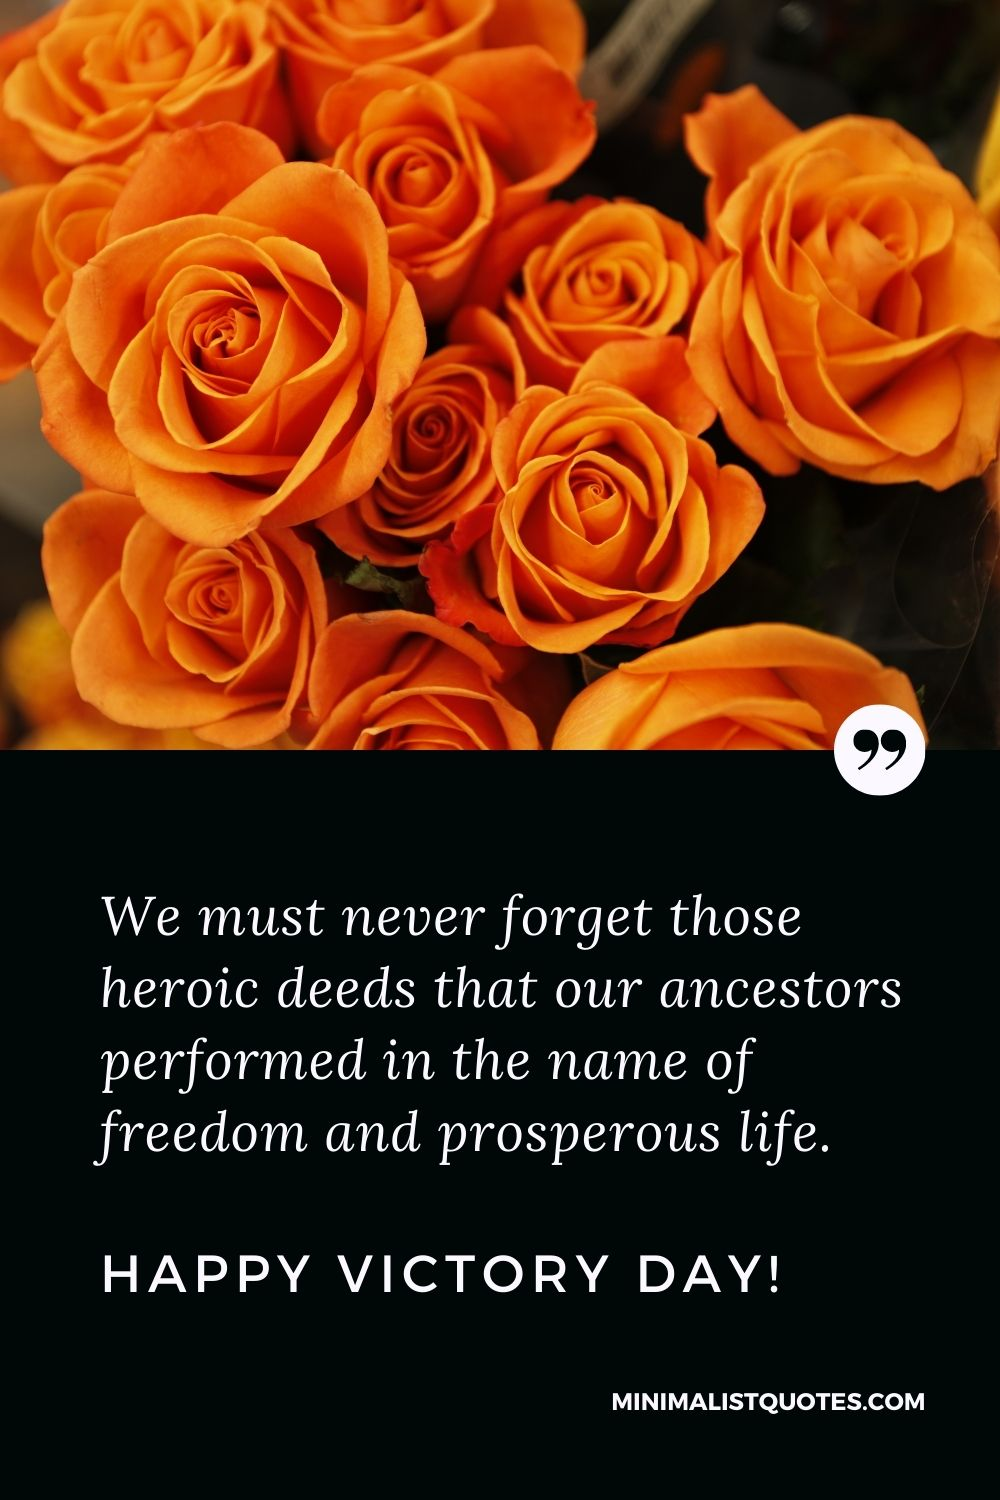 Victory Day Quote, Wish & Message With Image: We must never forget those heroic deeds that our ancestors performed in the name of freedom and prosperous life. Happy Victory Day!